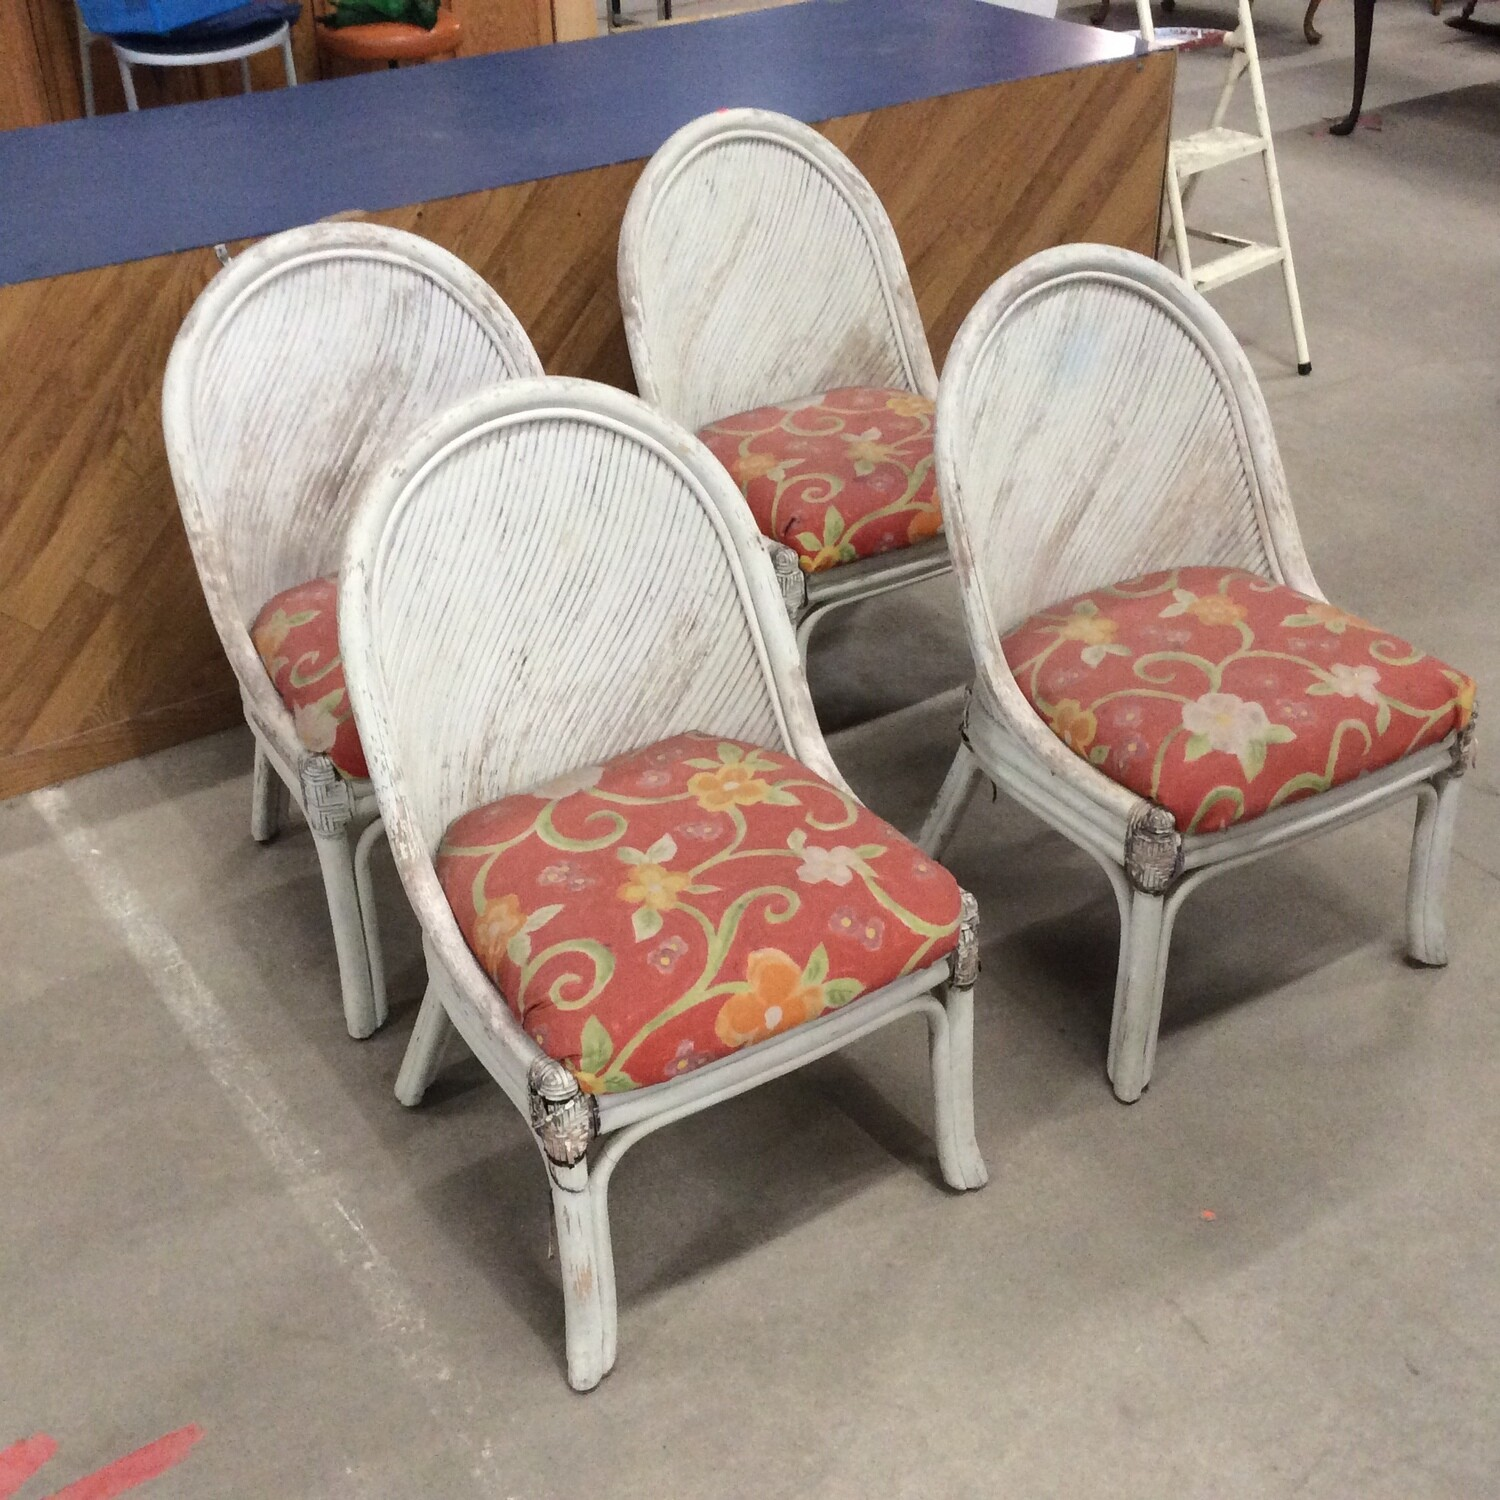 Set of 4 Patio Chairs